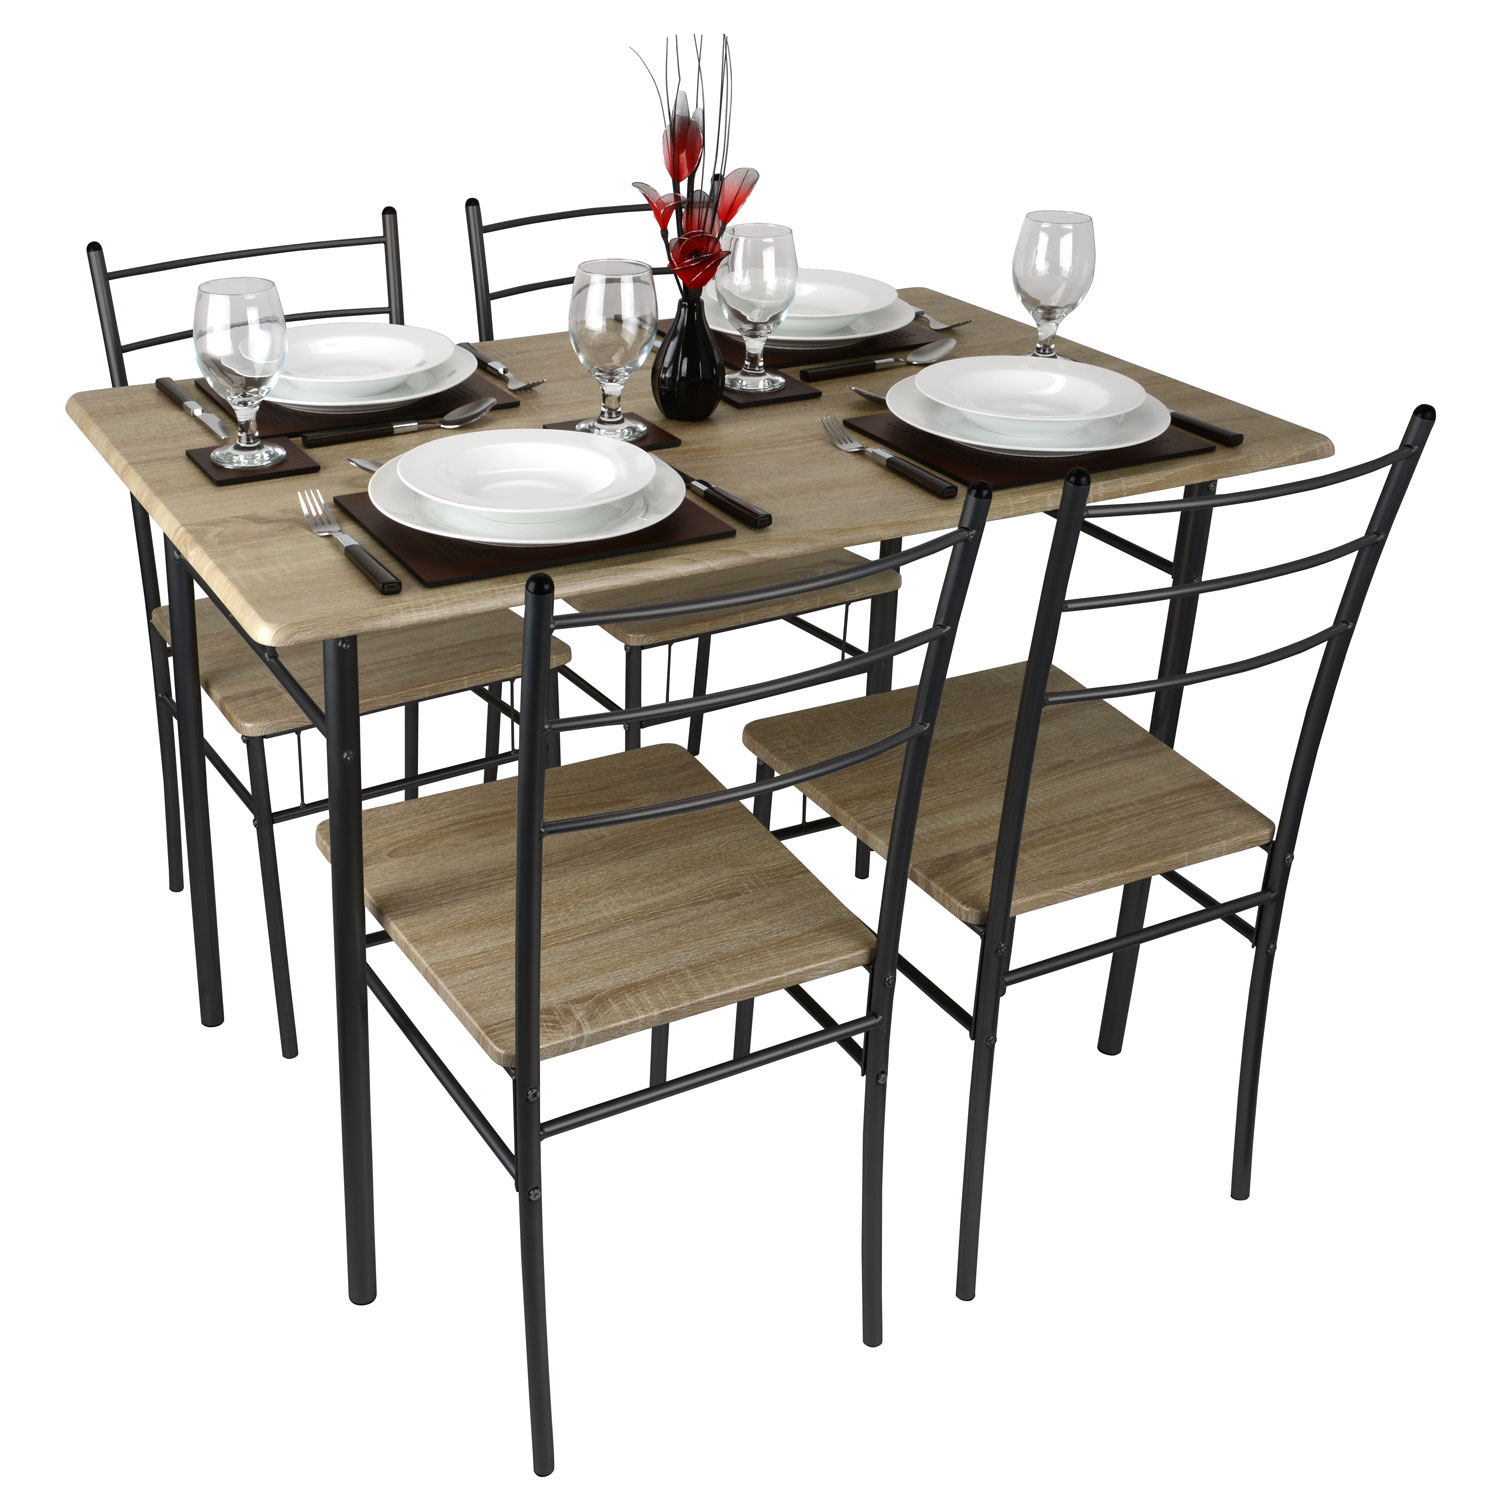 modern tables and chairs desk chair that leans back 5 piece dining table 4 set textured wood